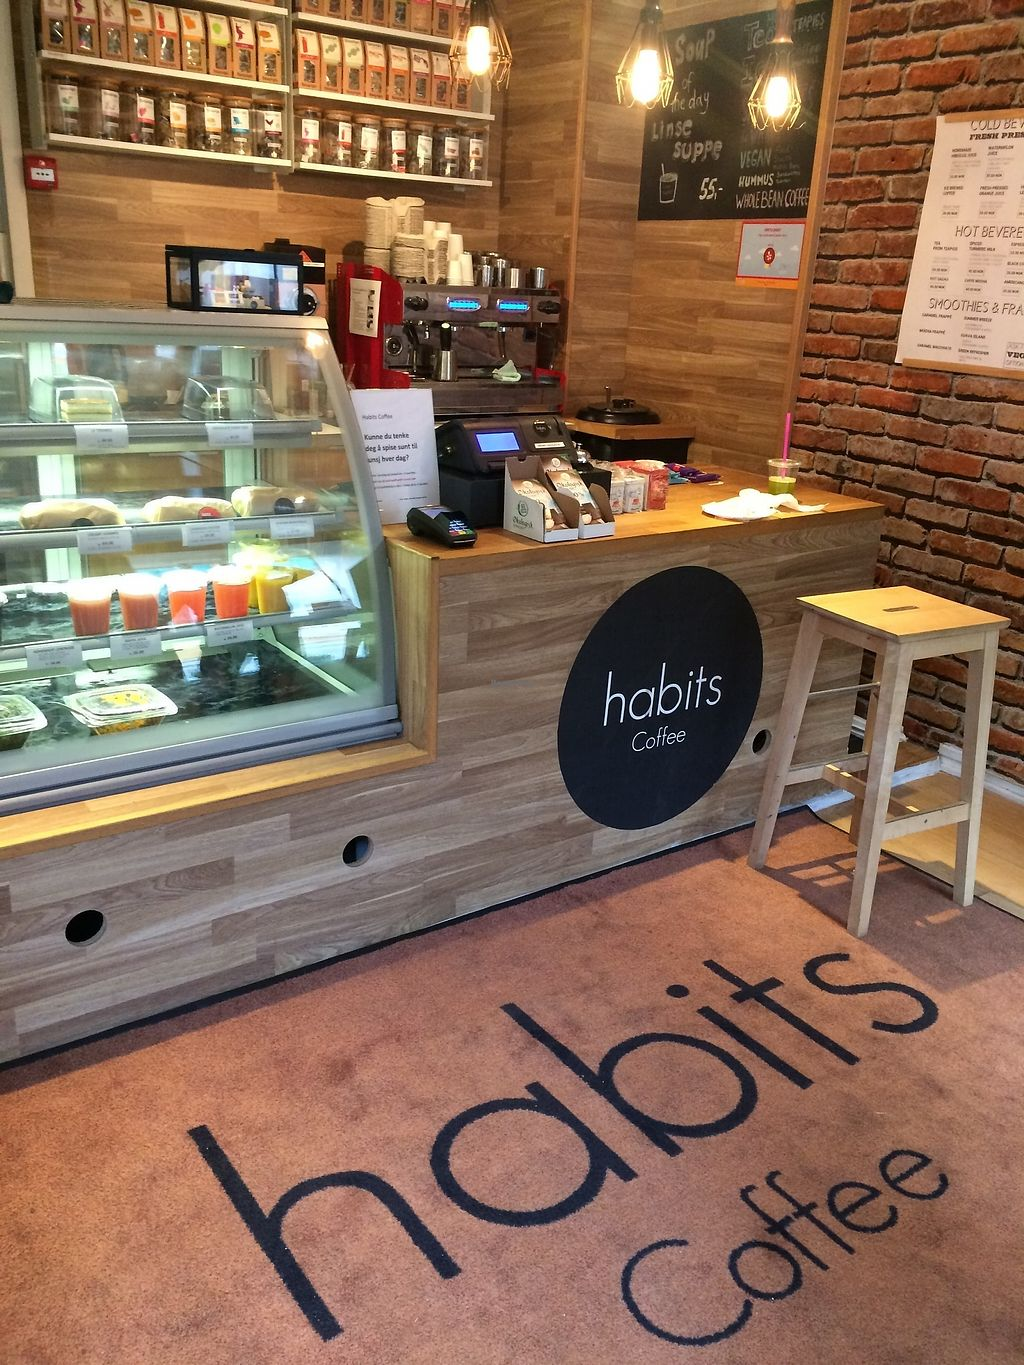 """Photo of Habits Coffee  by <a href=""""/members/profile/TDHill"""">TDHill</a> <br/>Cozy and warm cafe with more seating at a little table in the corner <br/> October 23, 2017  - <a href='/contact/abuse/image/103452/317874'>Report</a>"""